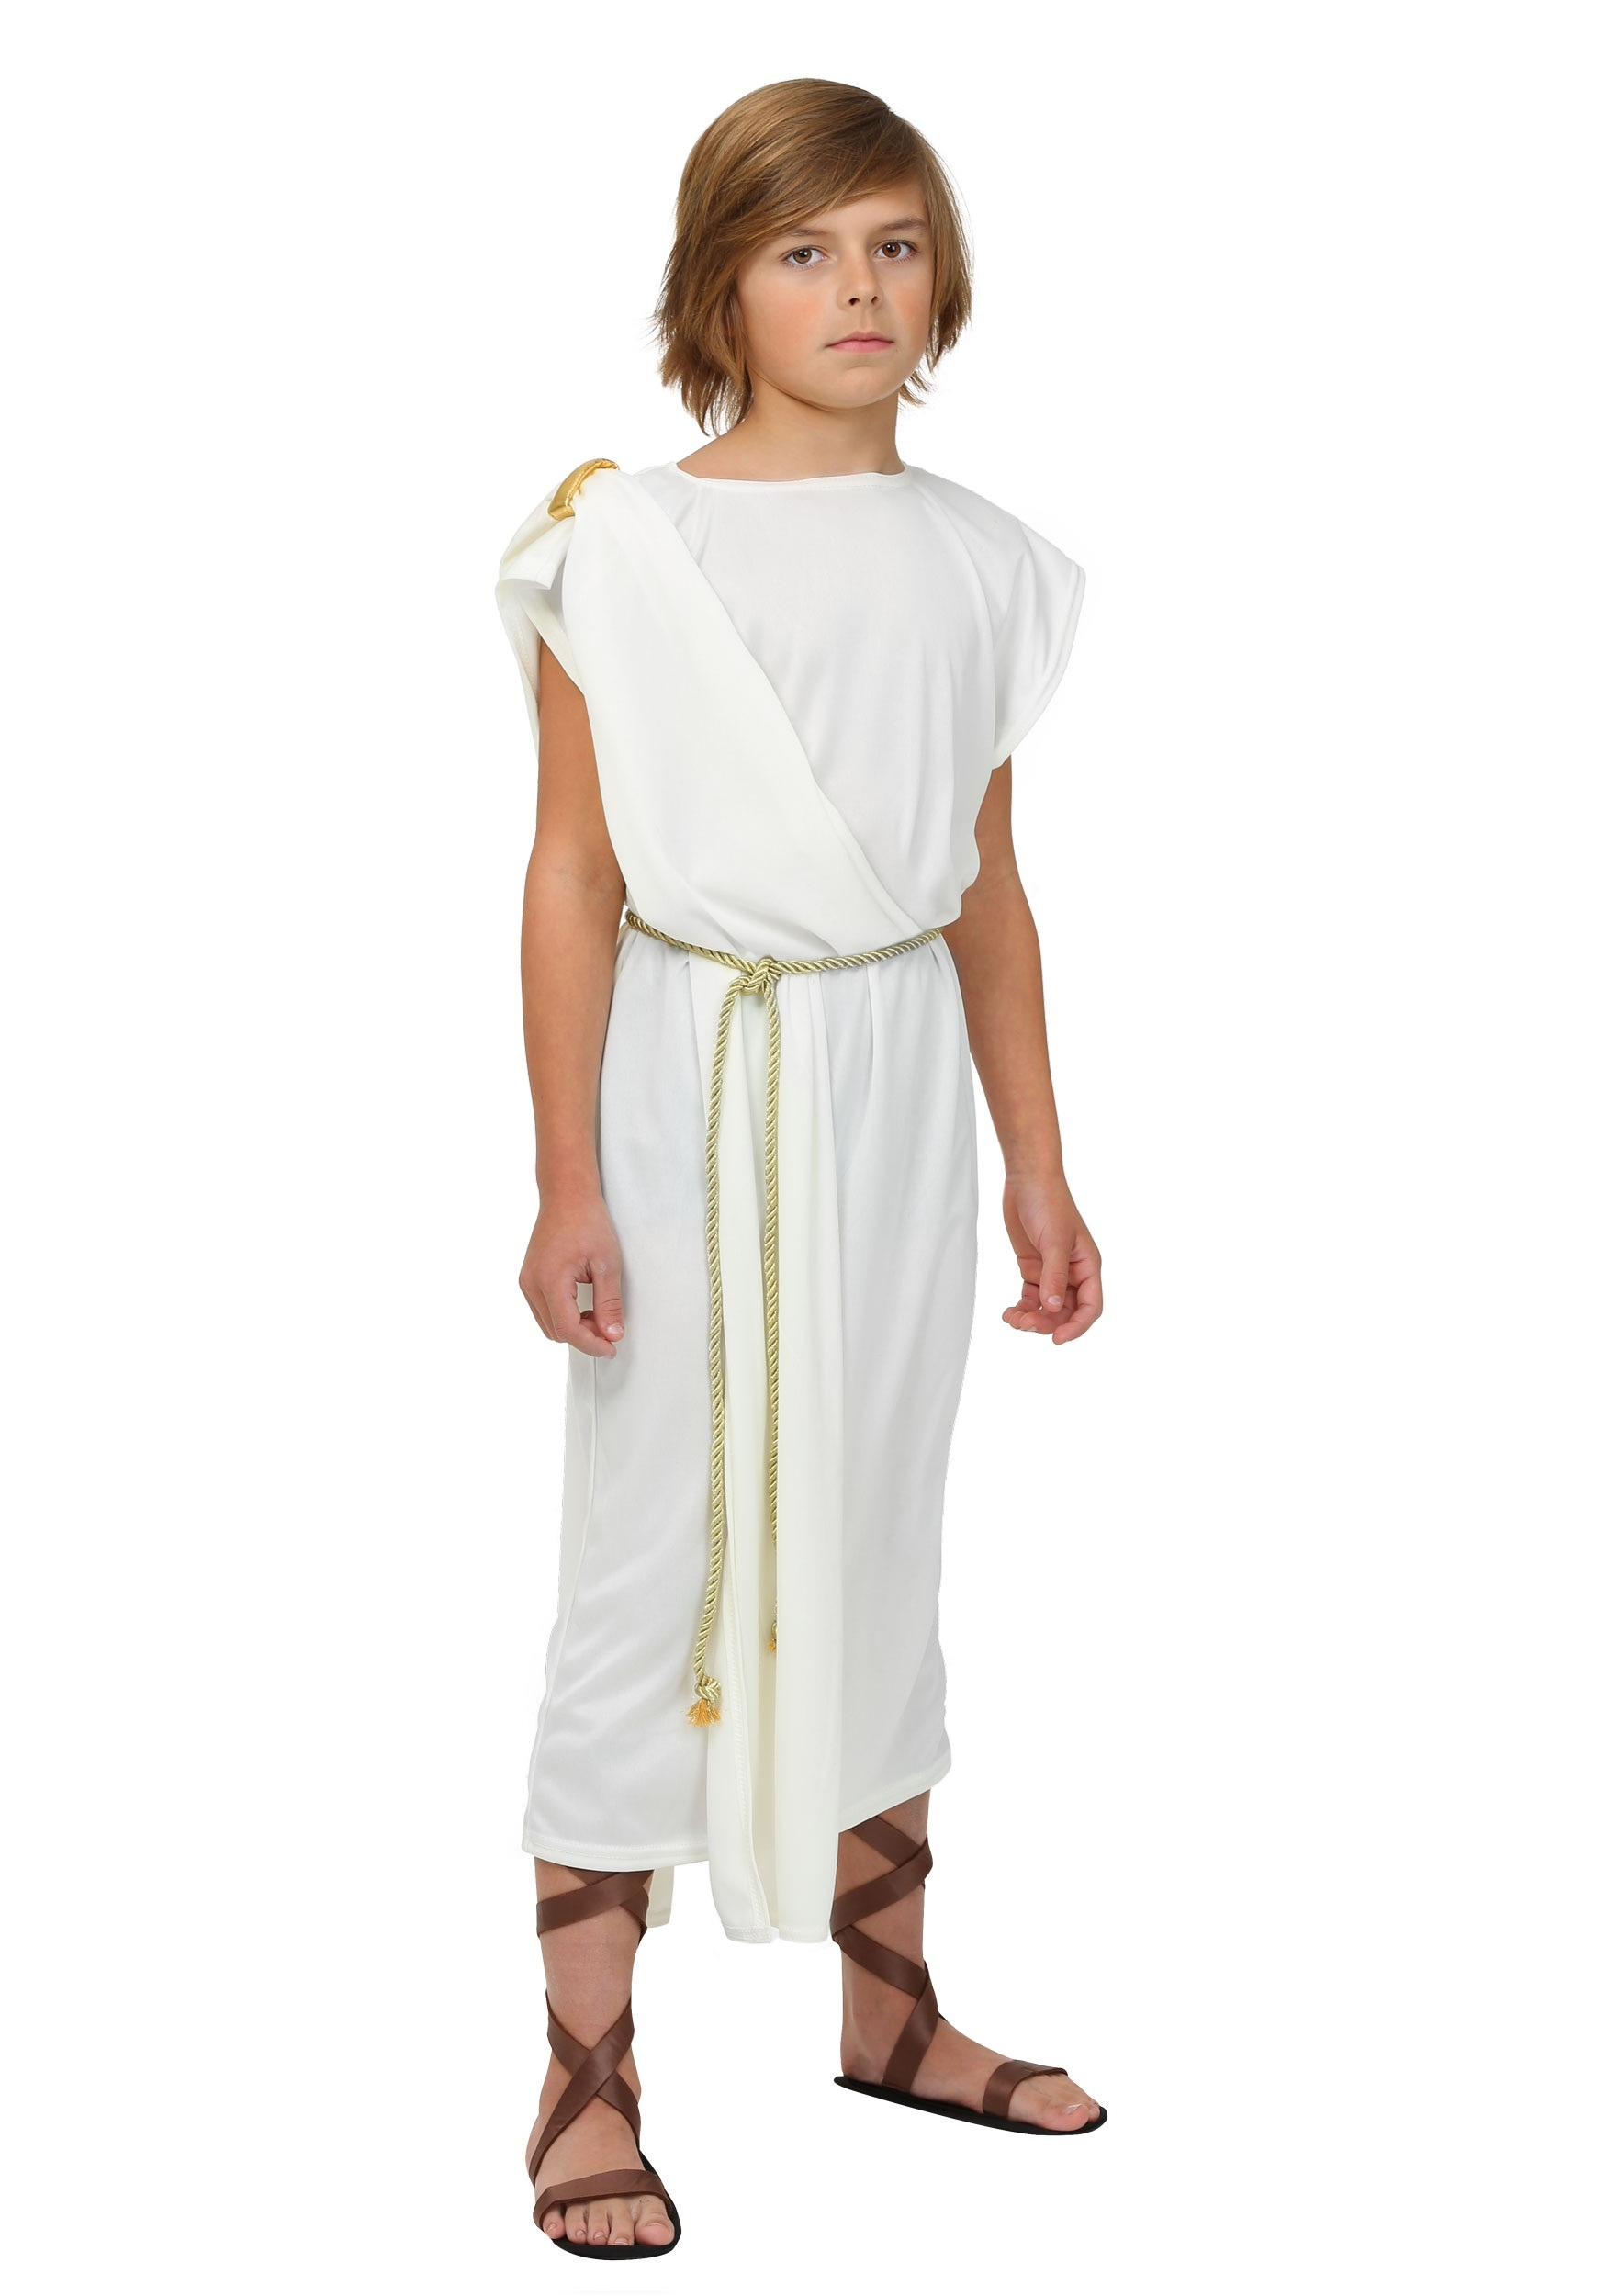 0e640ac85 Children's Toga Costume